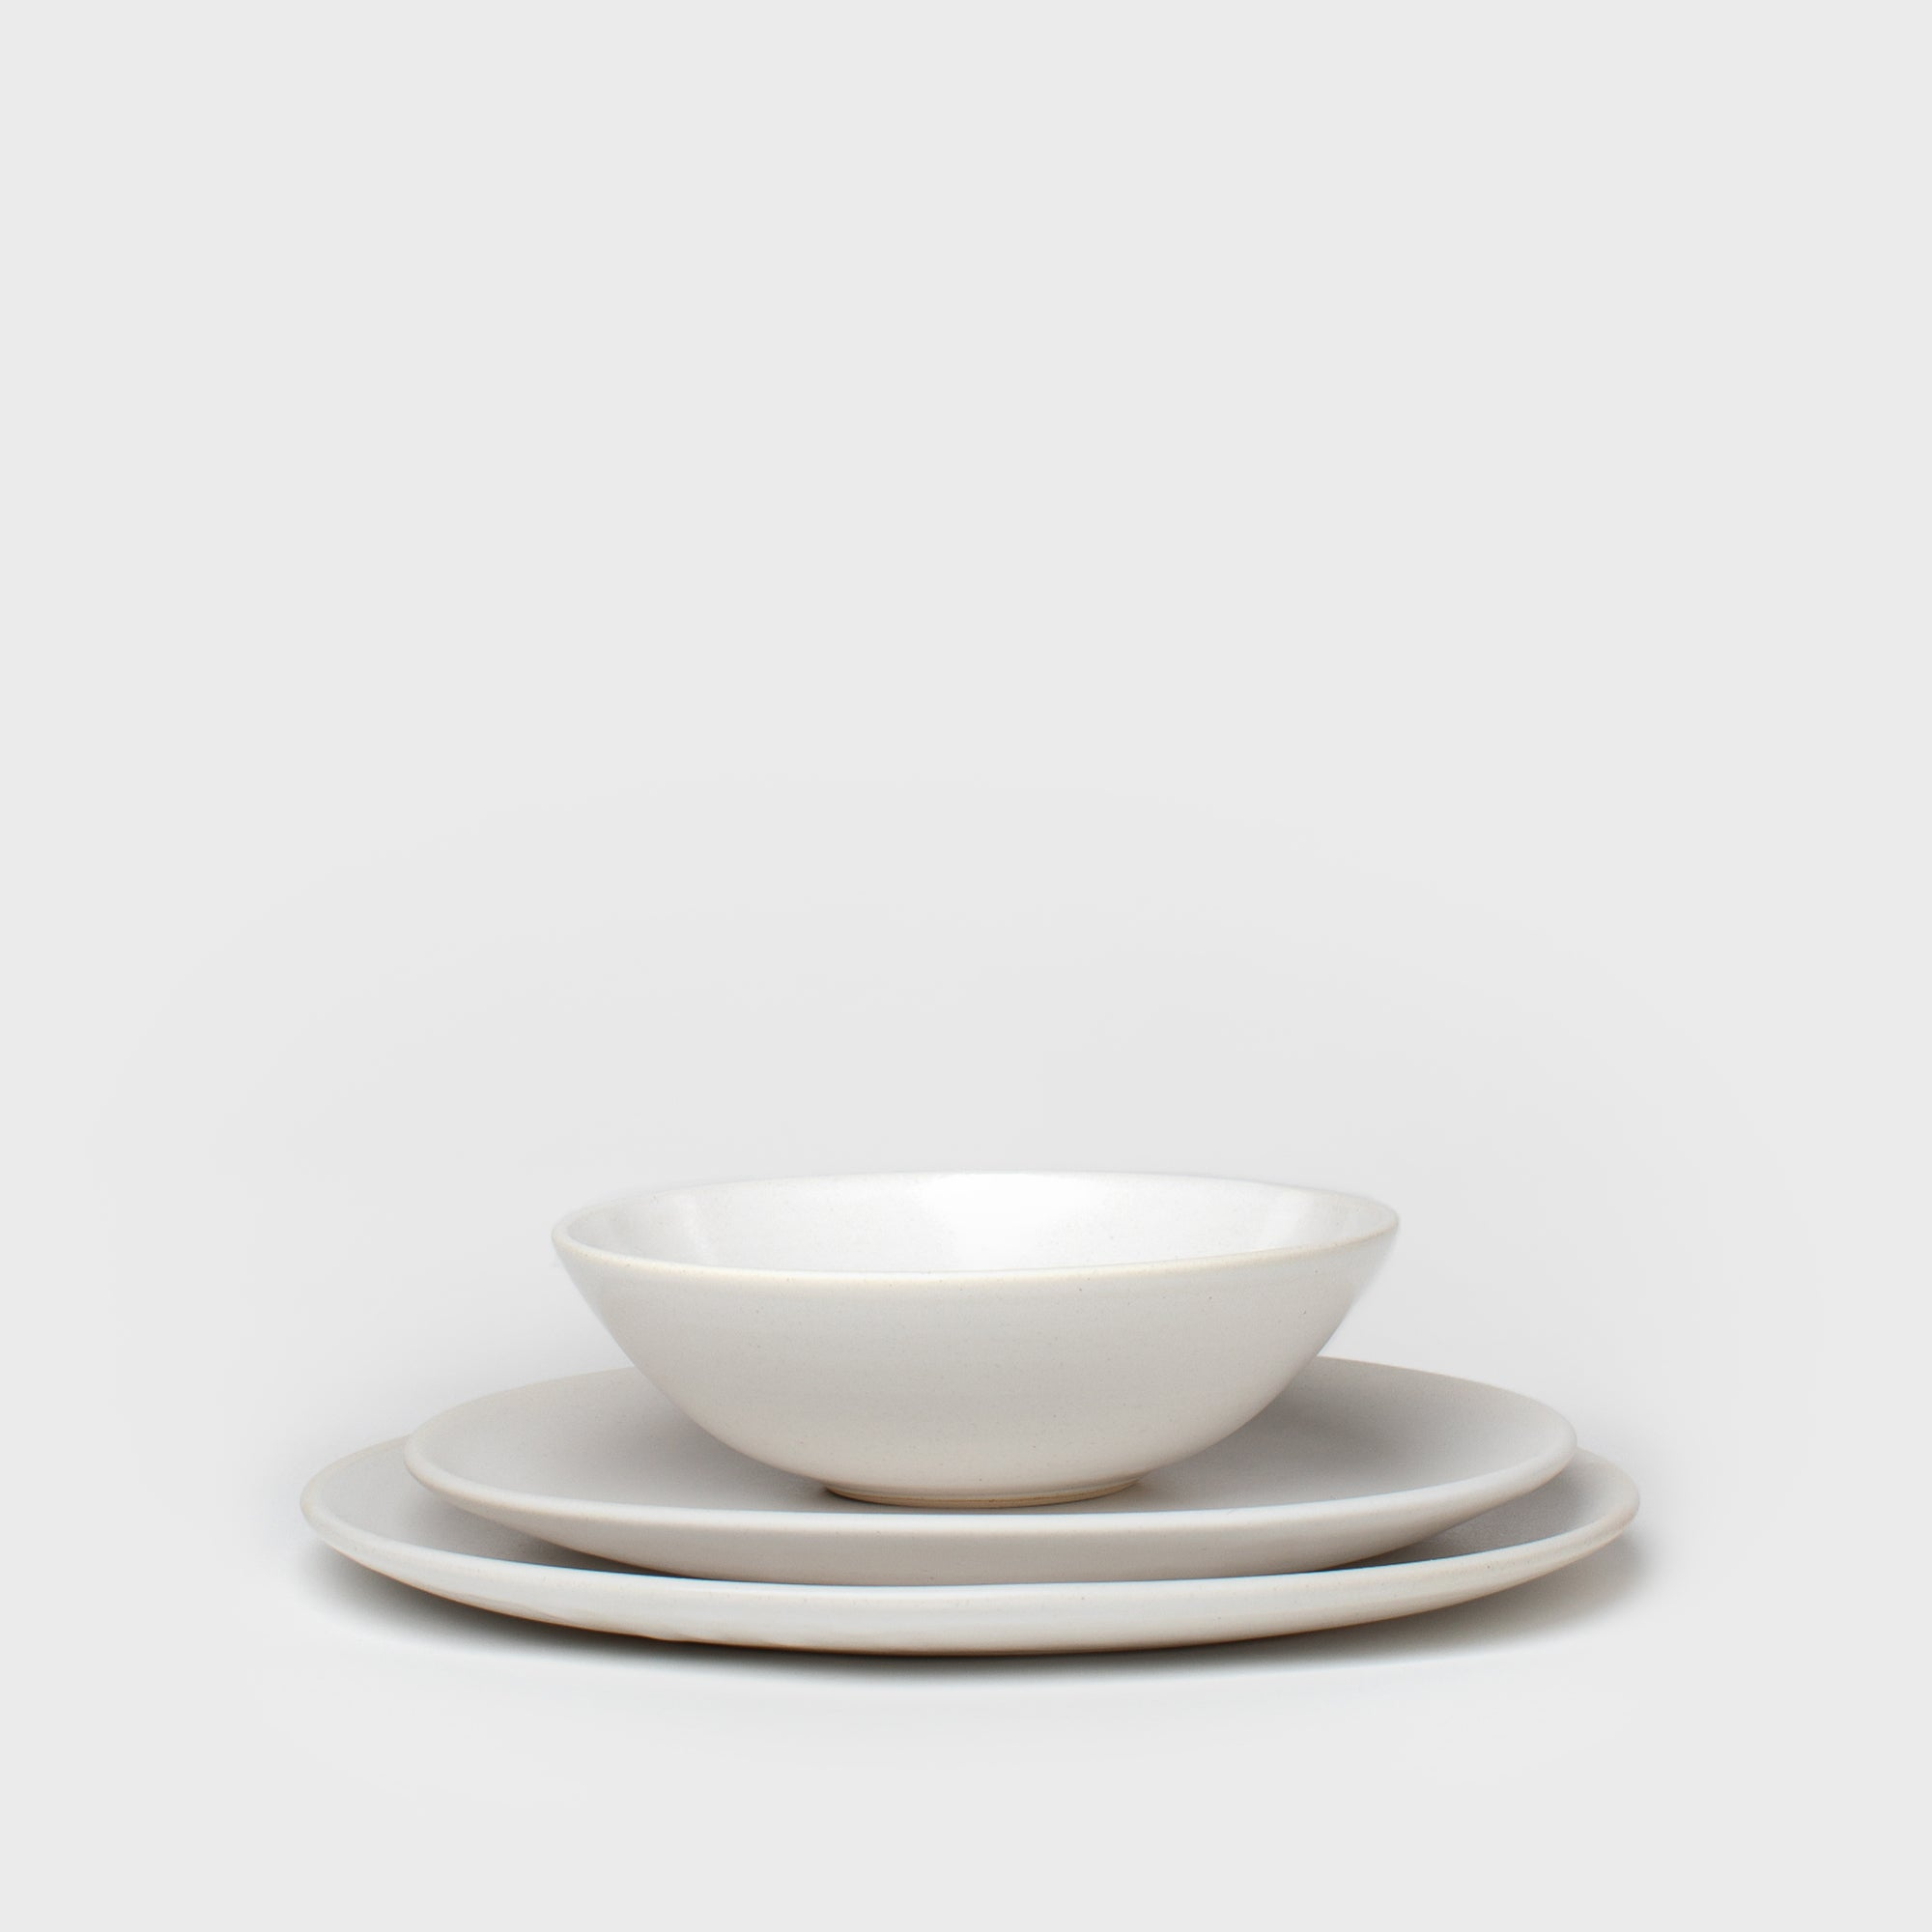 Dinner Plate in White by Meghan Flynn - Kitchen & Dining – Shoppe Amber Interiors